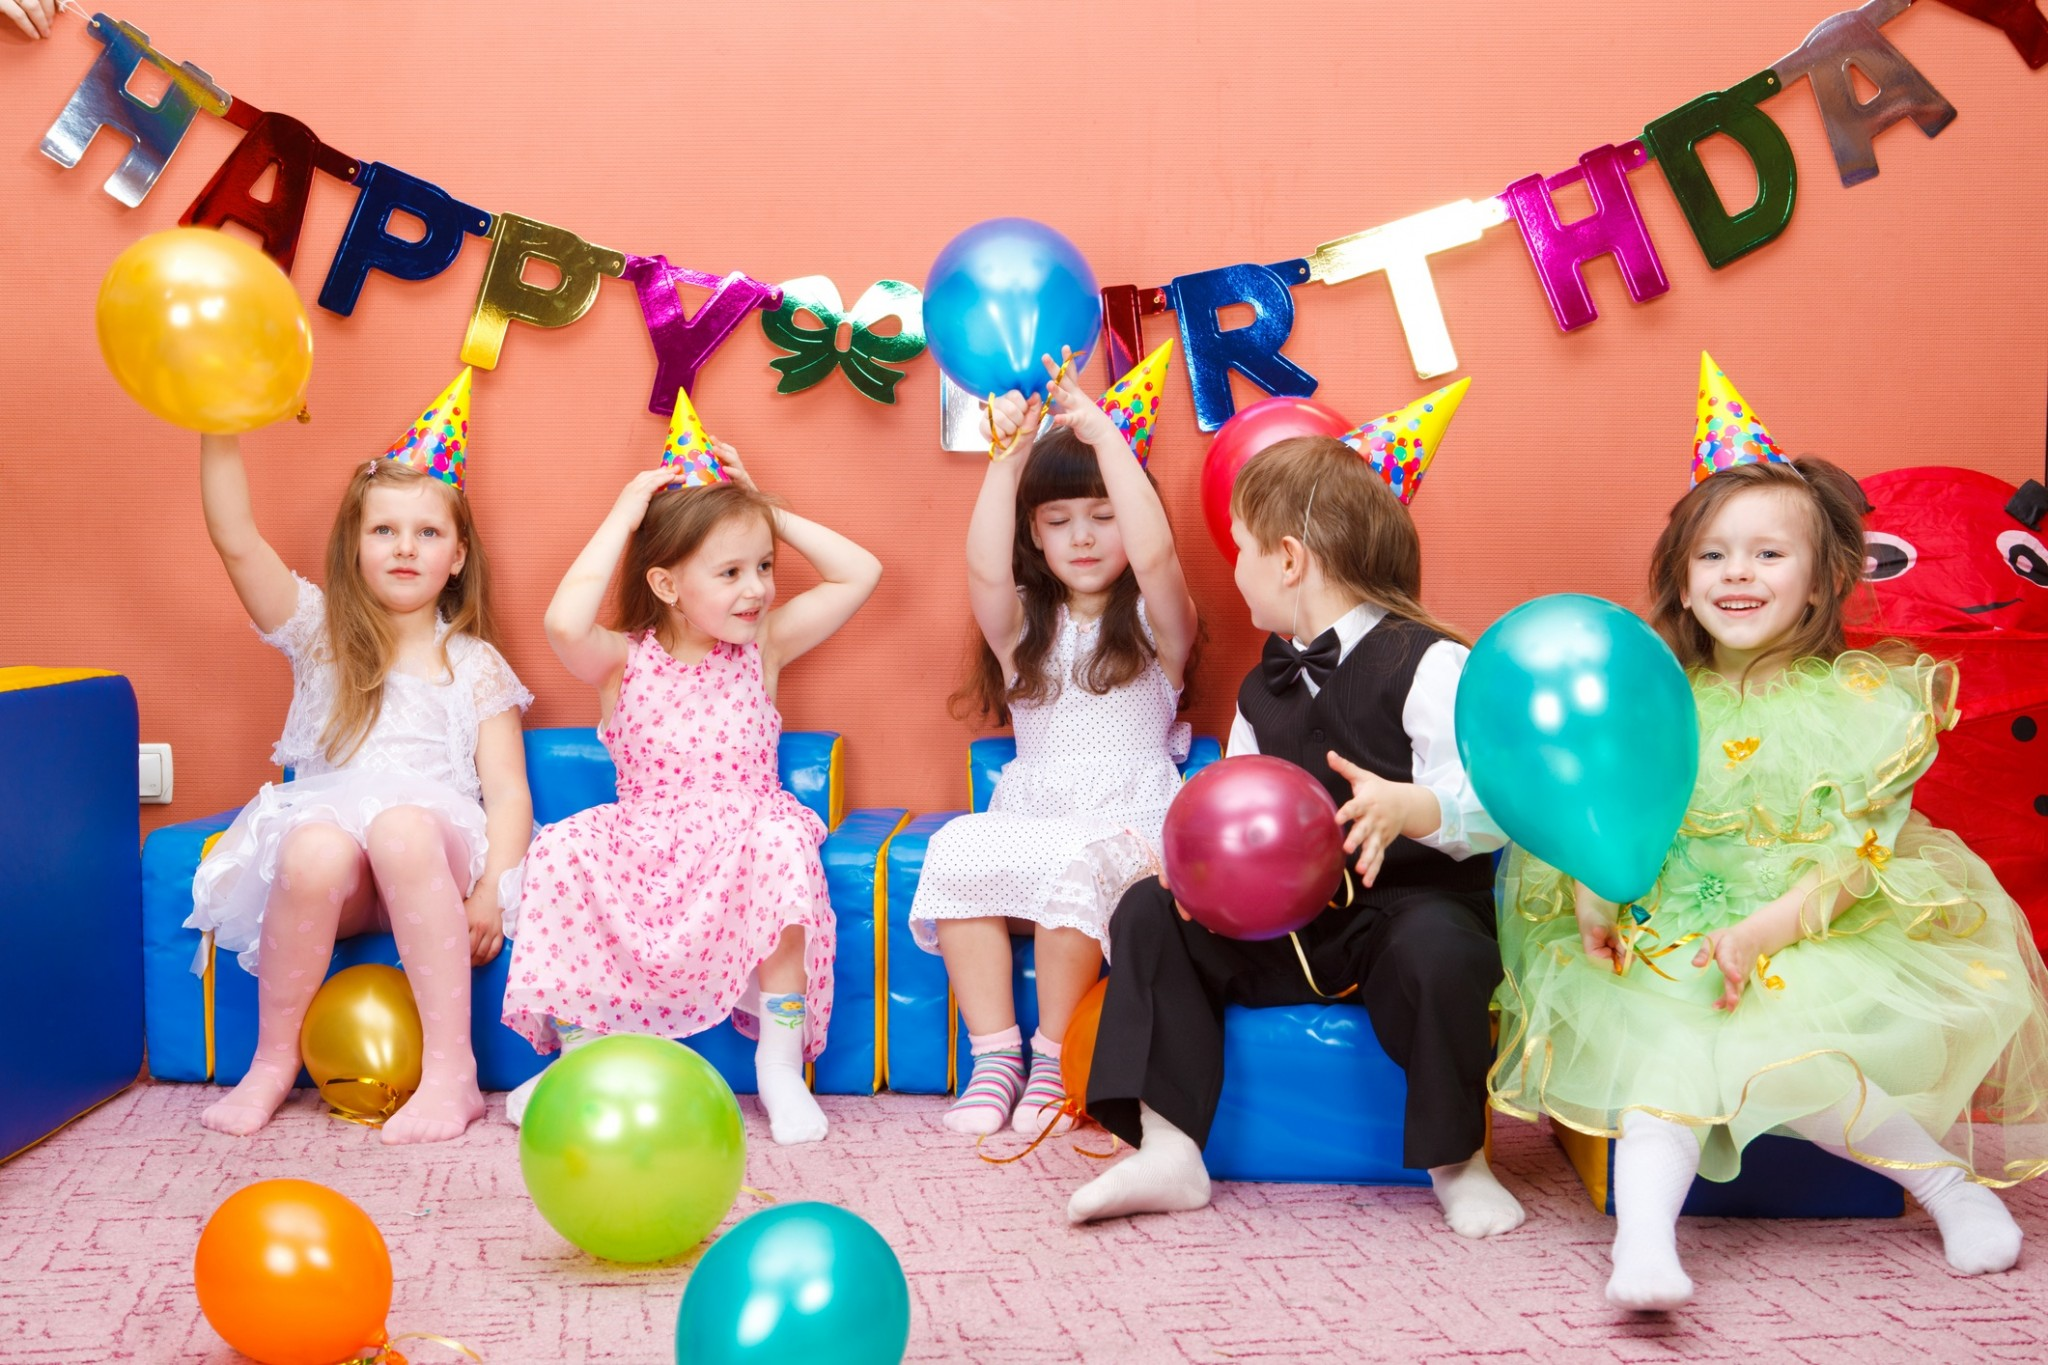 Balloons McPeakes - Childrens birthday party ideas east london